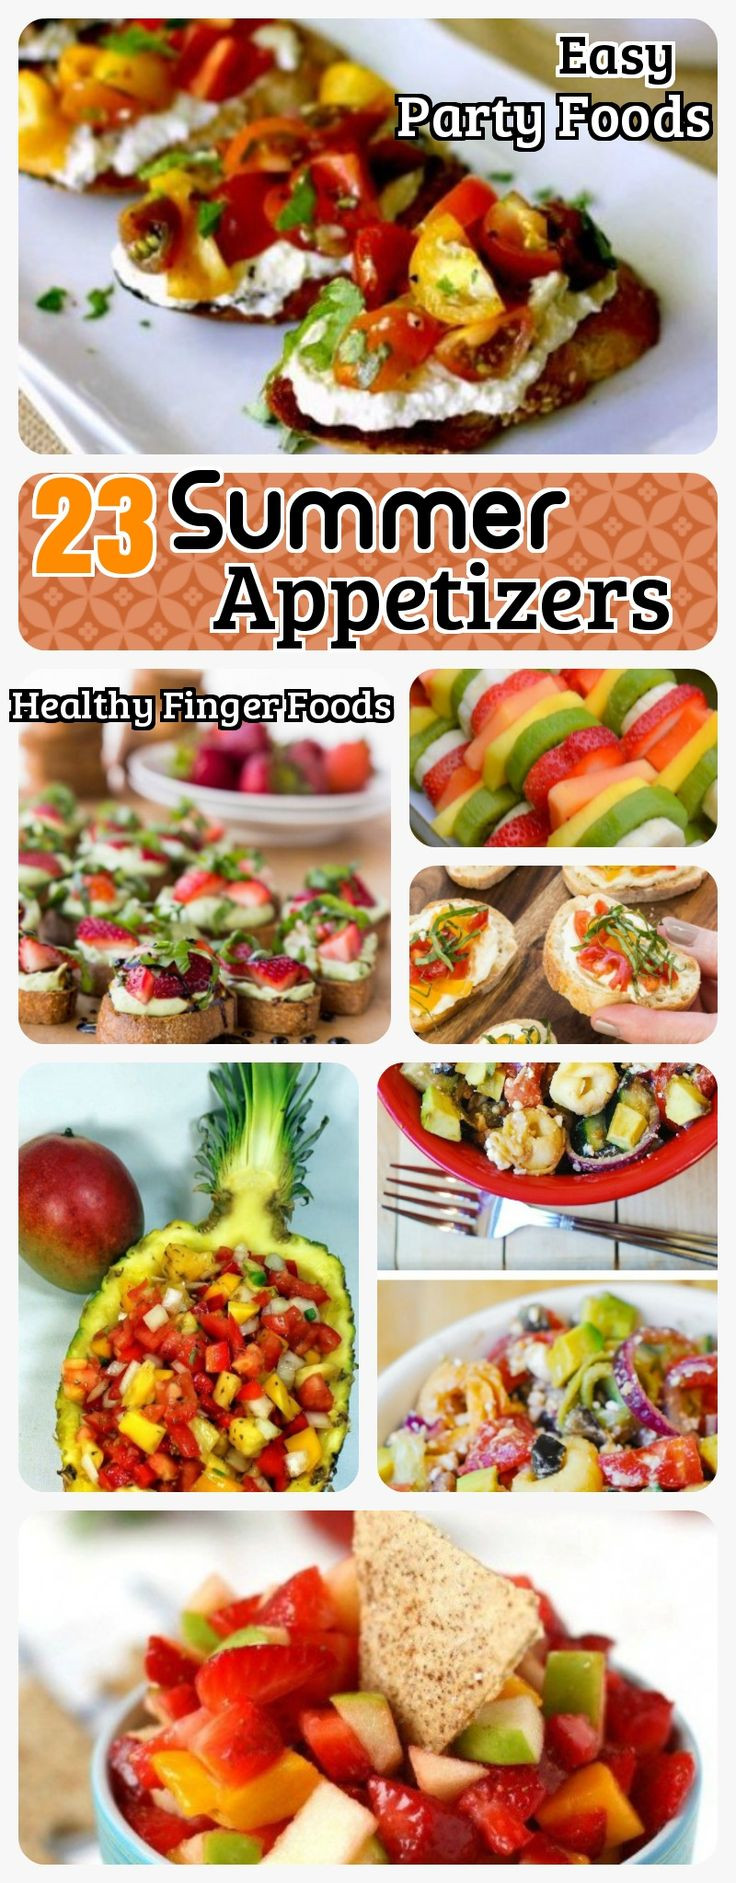 Summer Snacks Recipes  Best 25 Easy summer appetizers ideas on Pinterest